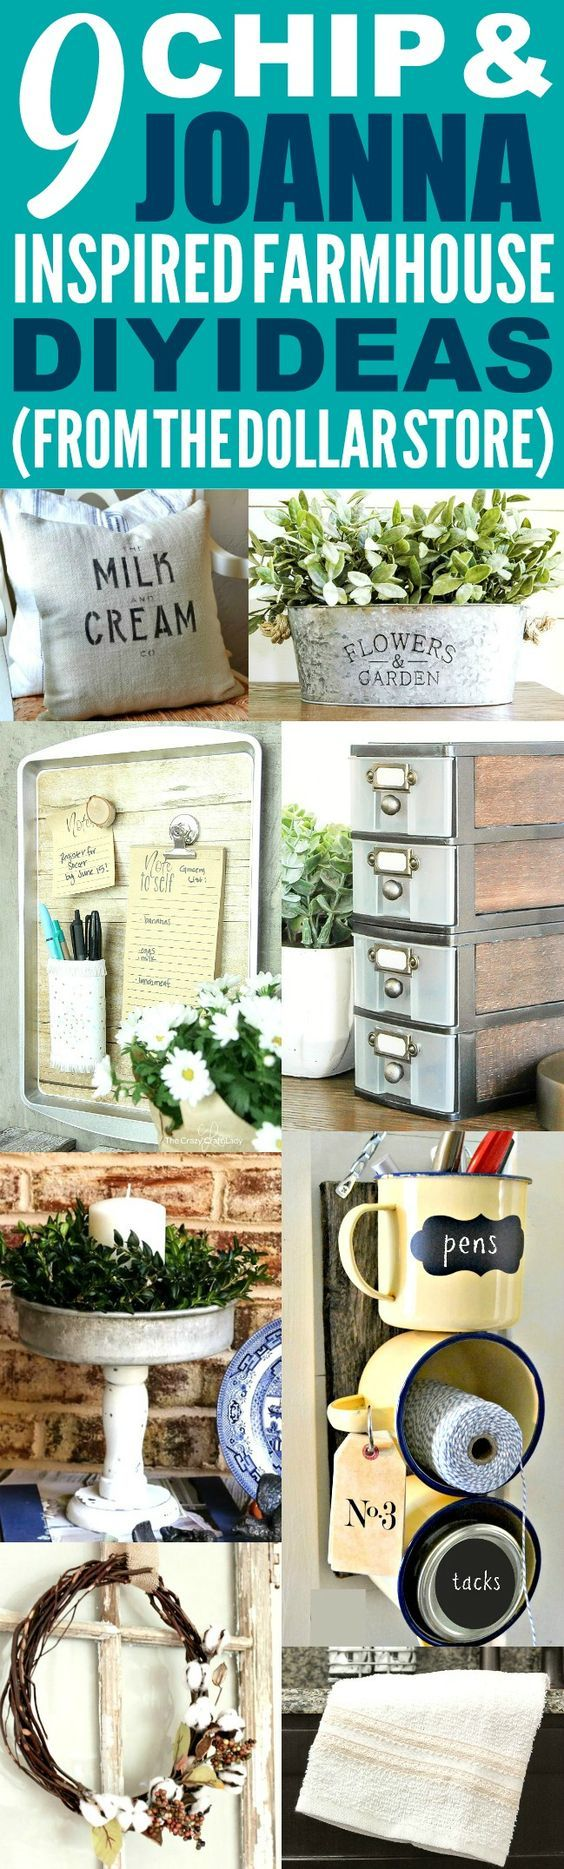 These 9 dollar store farmhouse decor ideas are THE BEST! I'm so happy I foun...